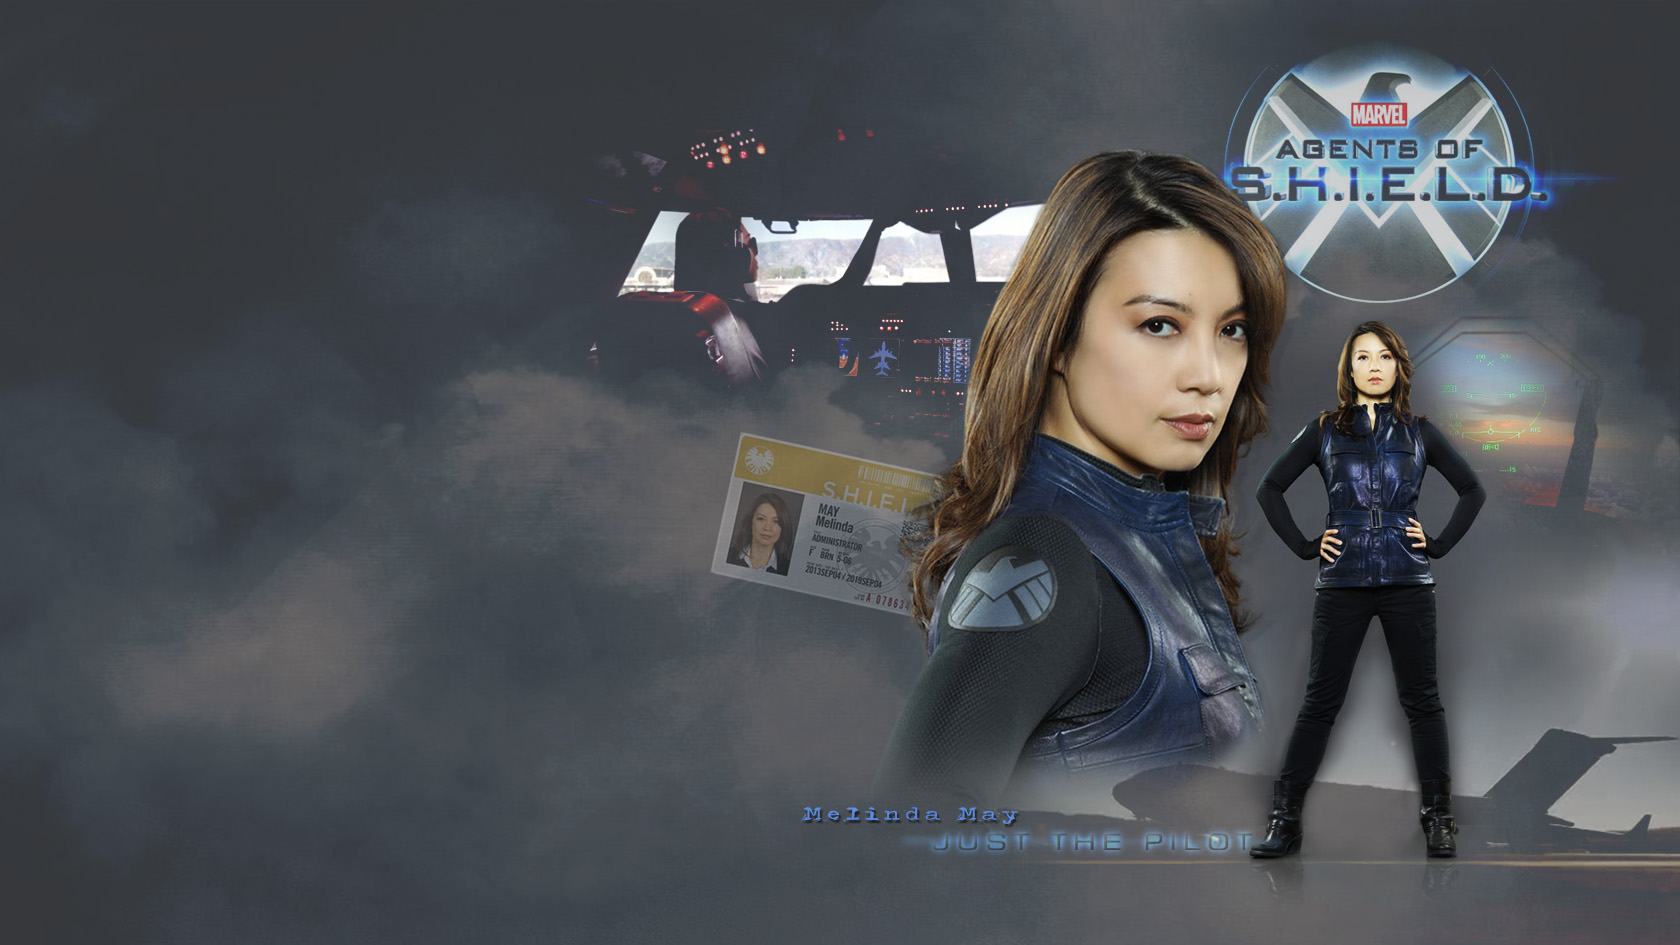 agents of shield wallpaper 22